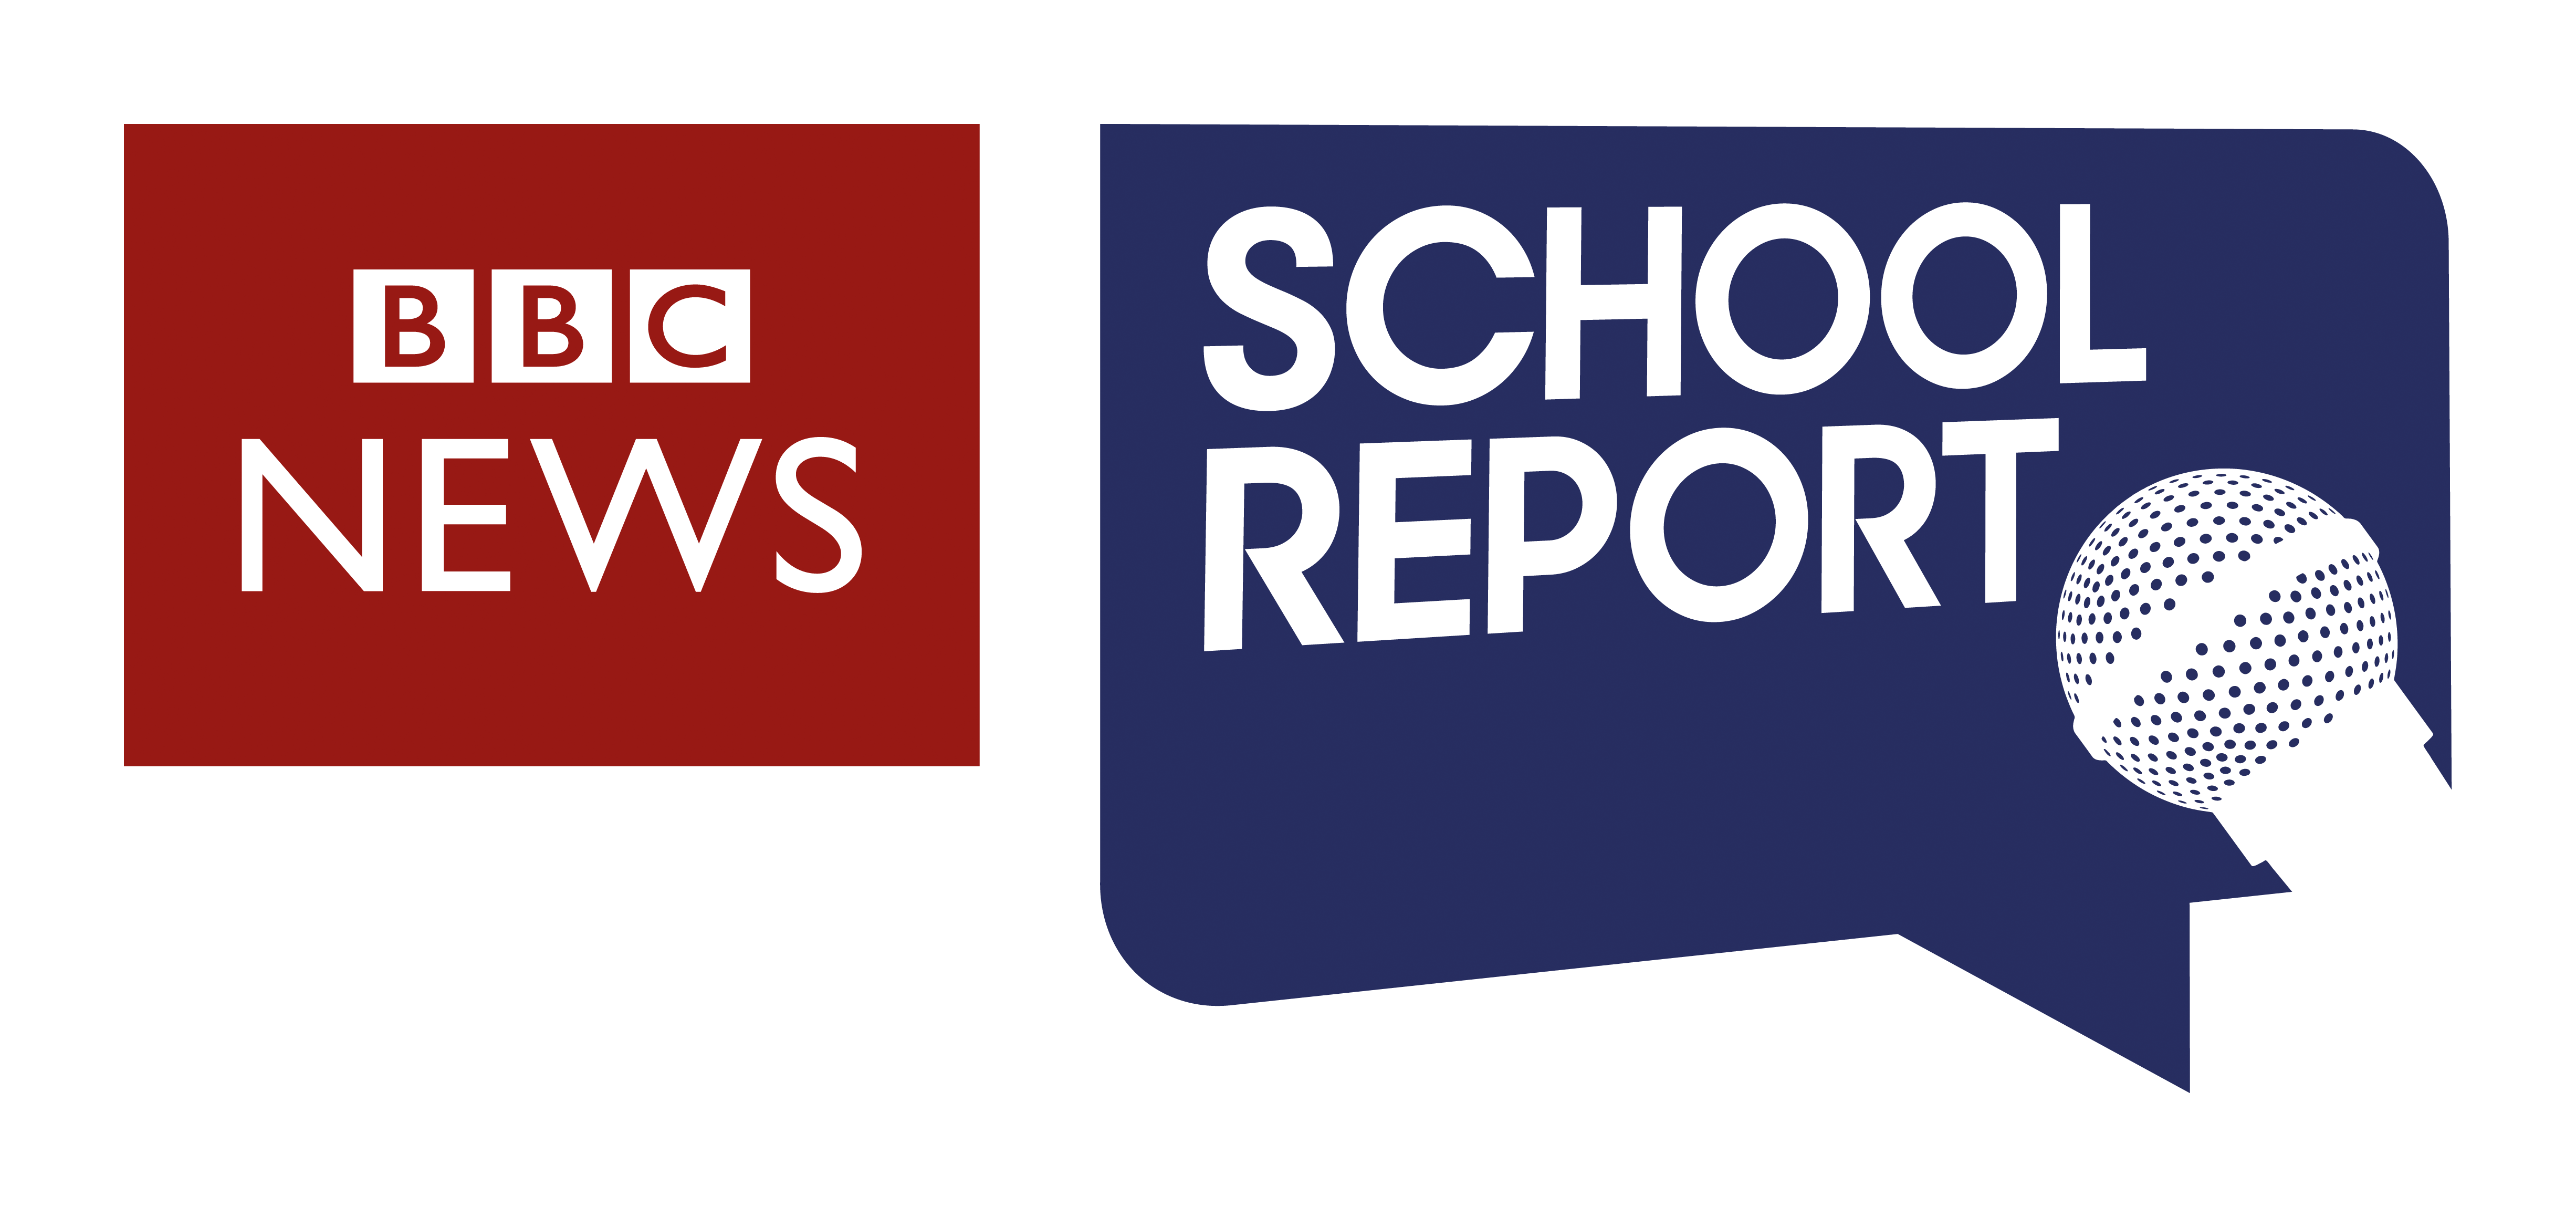 school-report-and-bbc-news-block